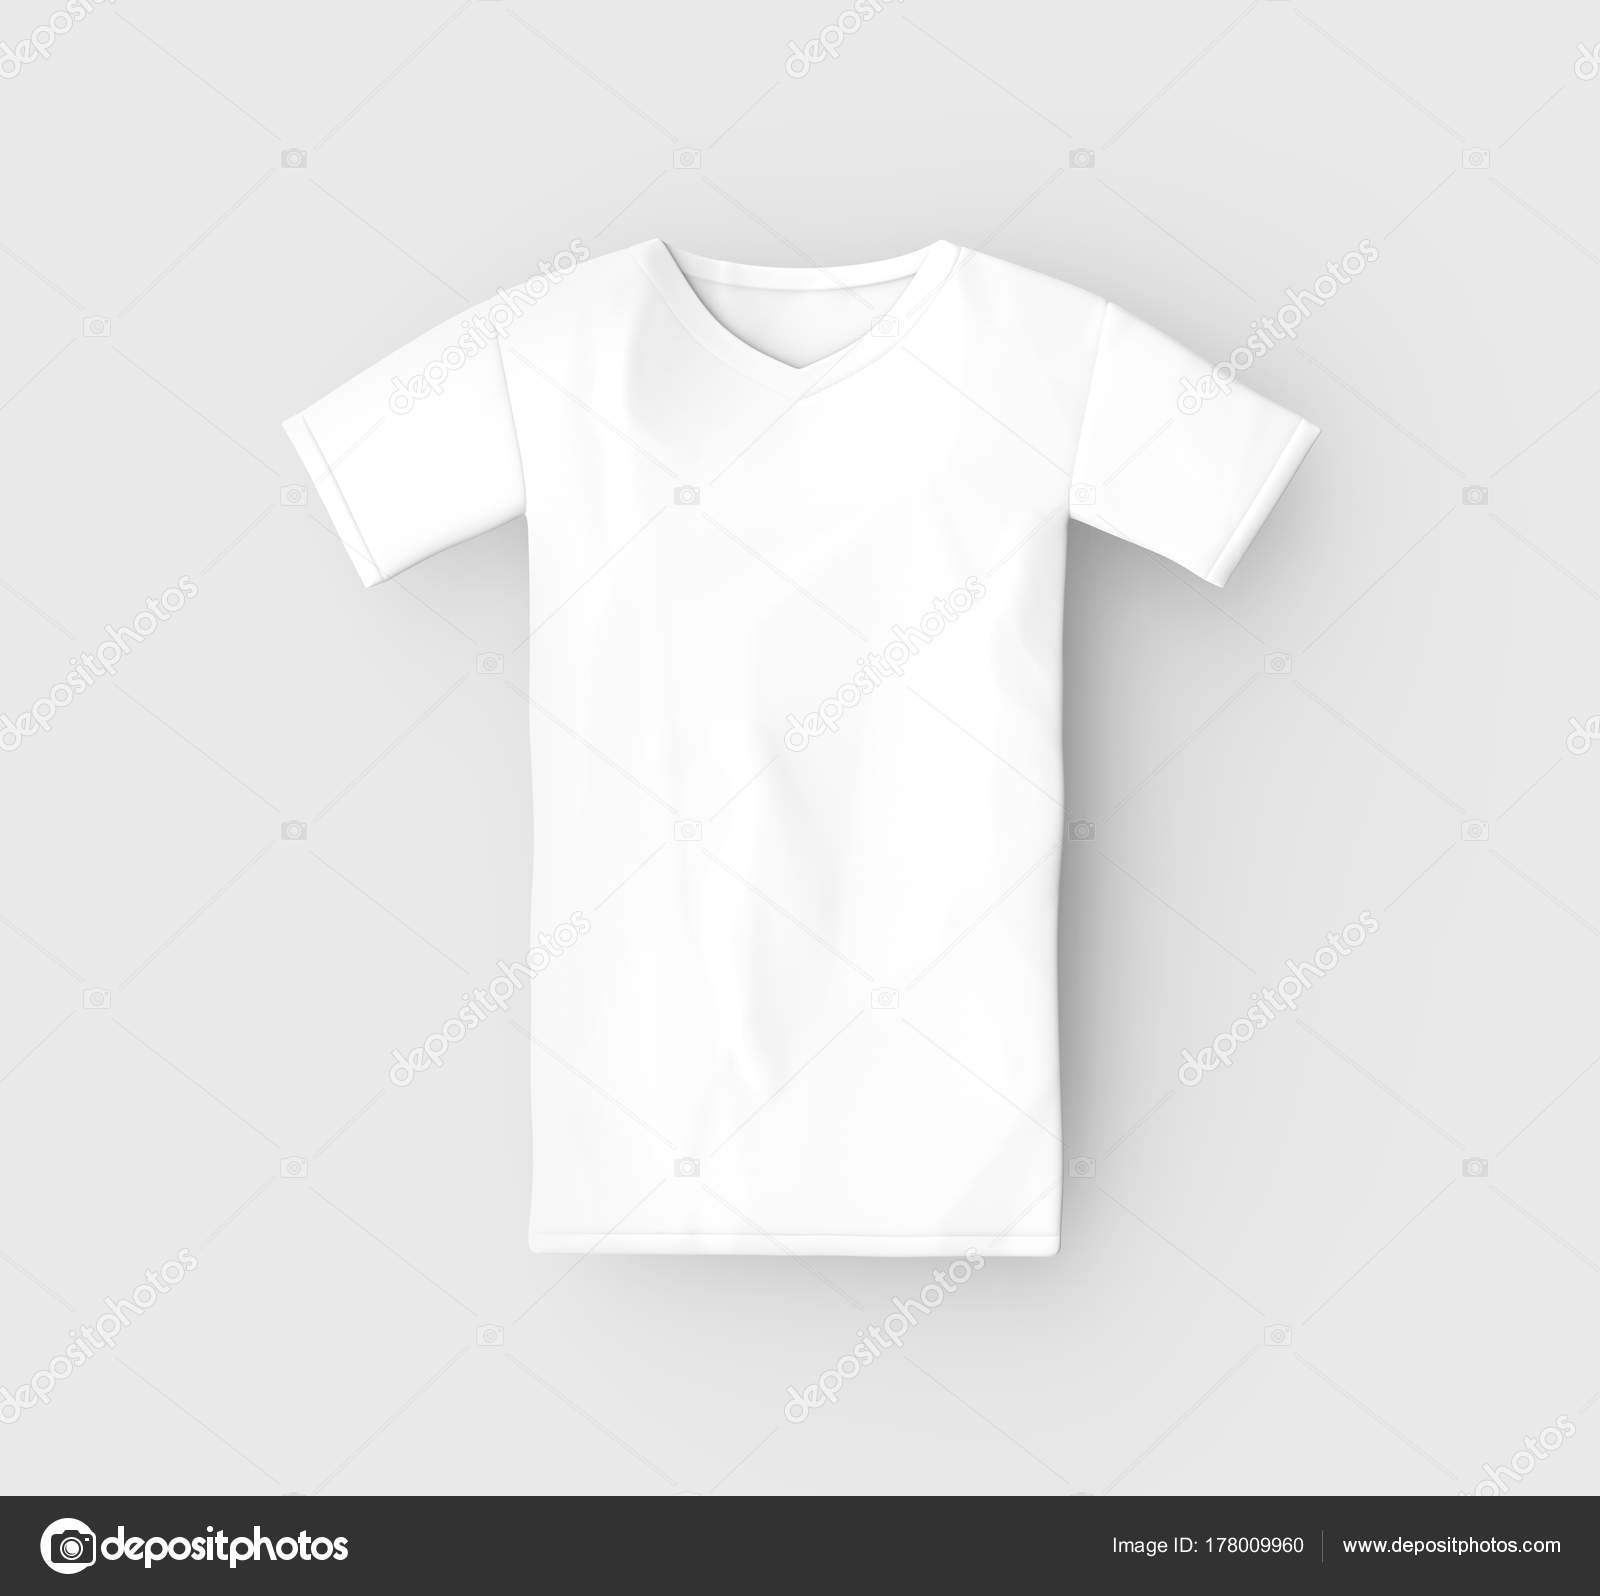 V Neck T Shirt Mockup Blank White Unisex Cloth Template Isolated On Light Gray Background 3d Render Photo By Kchungtw